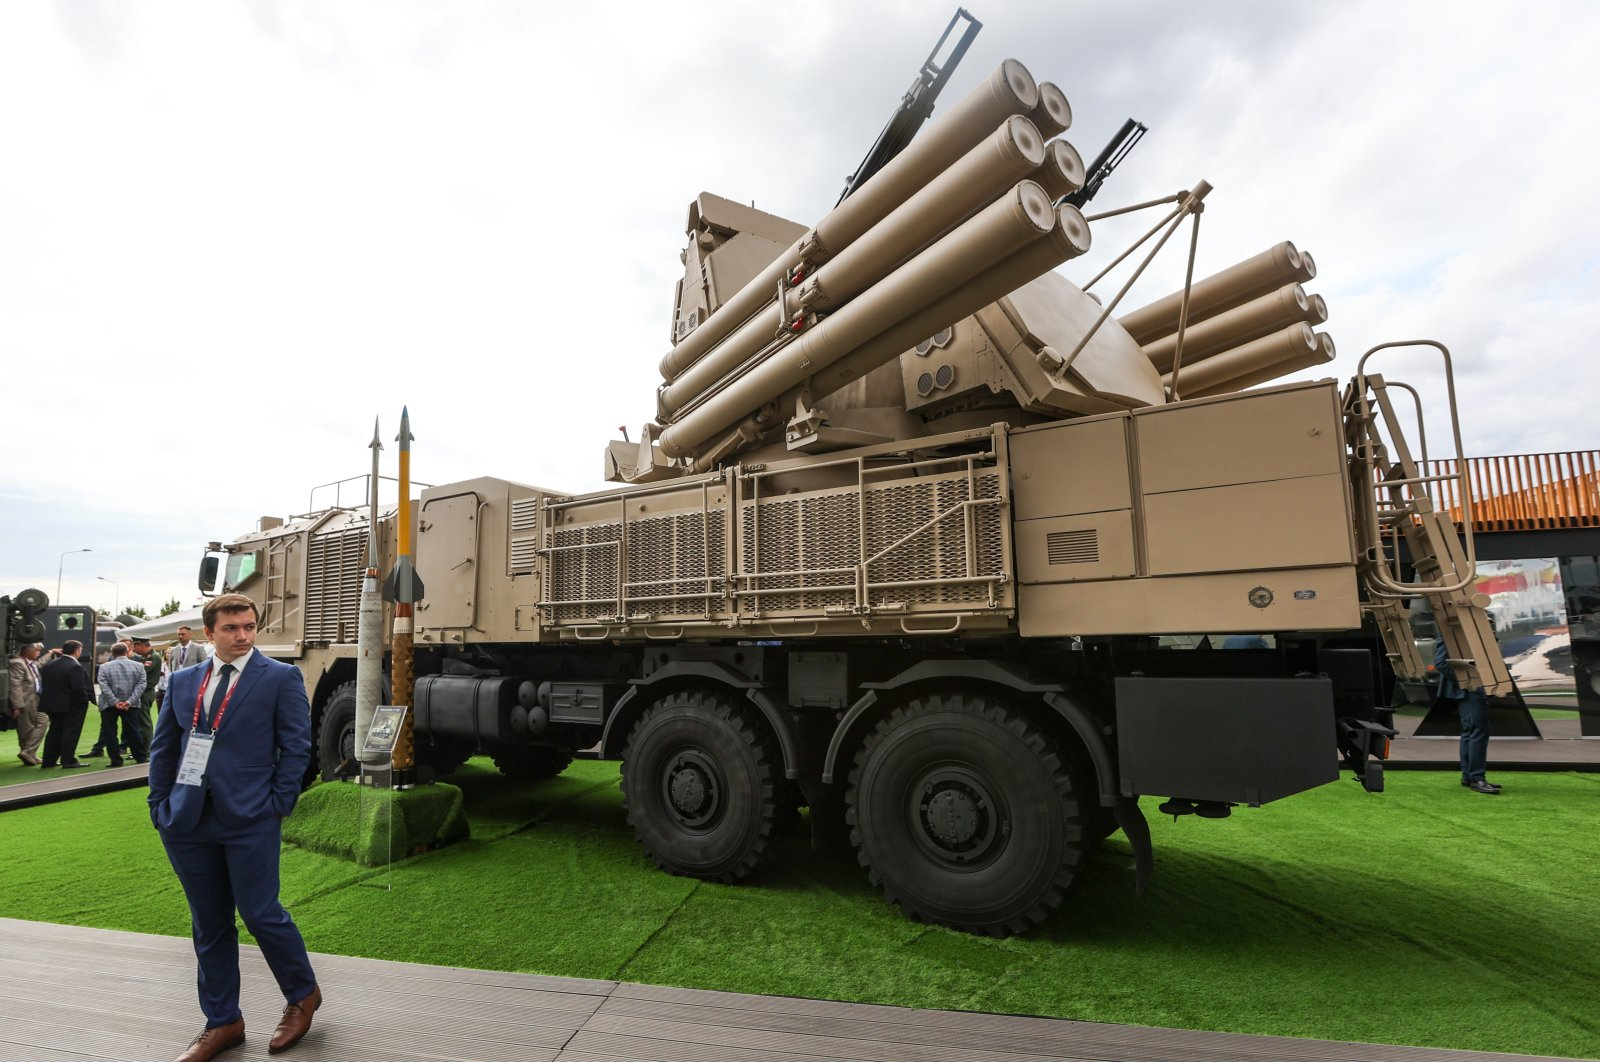 A Pantsir-S1M surface-to-air missile and anti-aircraft artillery system on display at the Army 2021 International Military and Technical Forum in Patriot Military Park in the town of Kubinka, west of Moscow, Russia, Aug. 24, 2021. (Photo by TASS via Reuters)